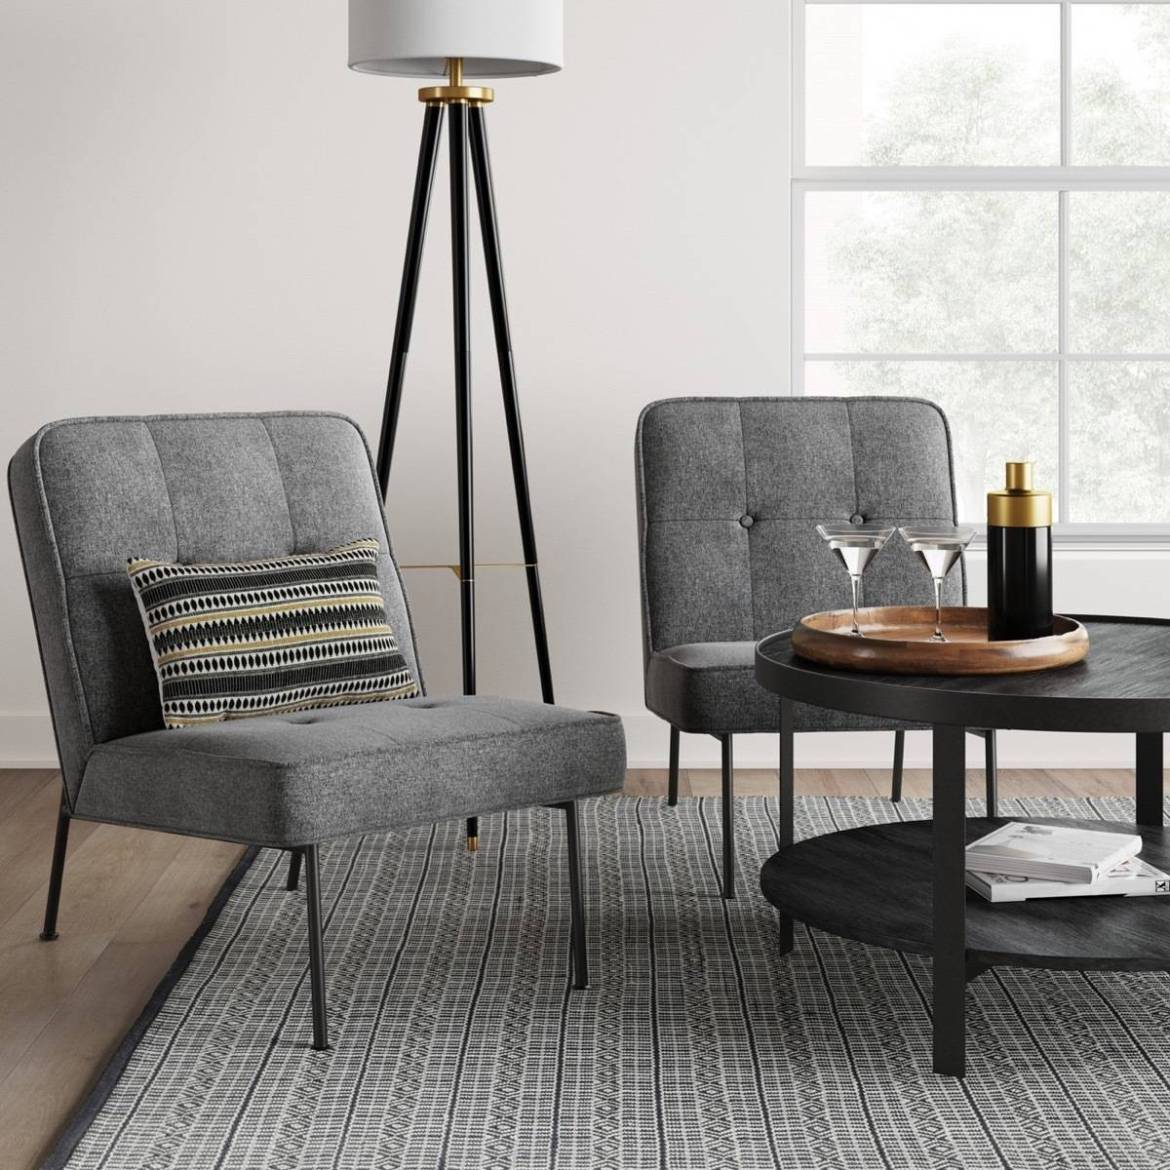 100 affordable furniture and home decor pieces - each for under $100